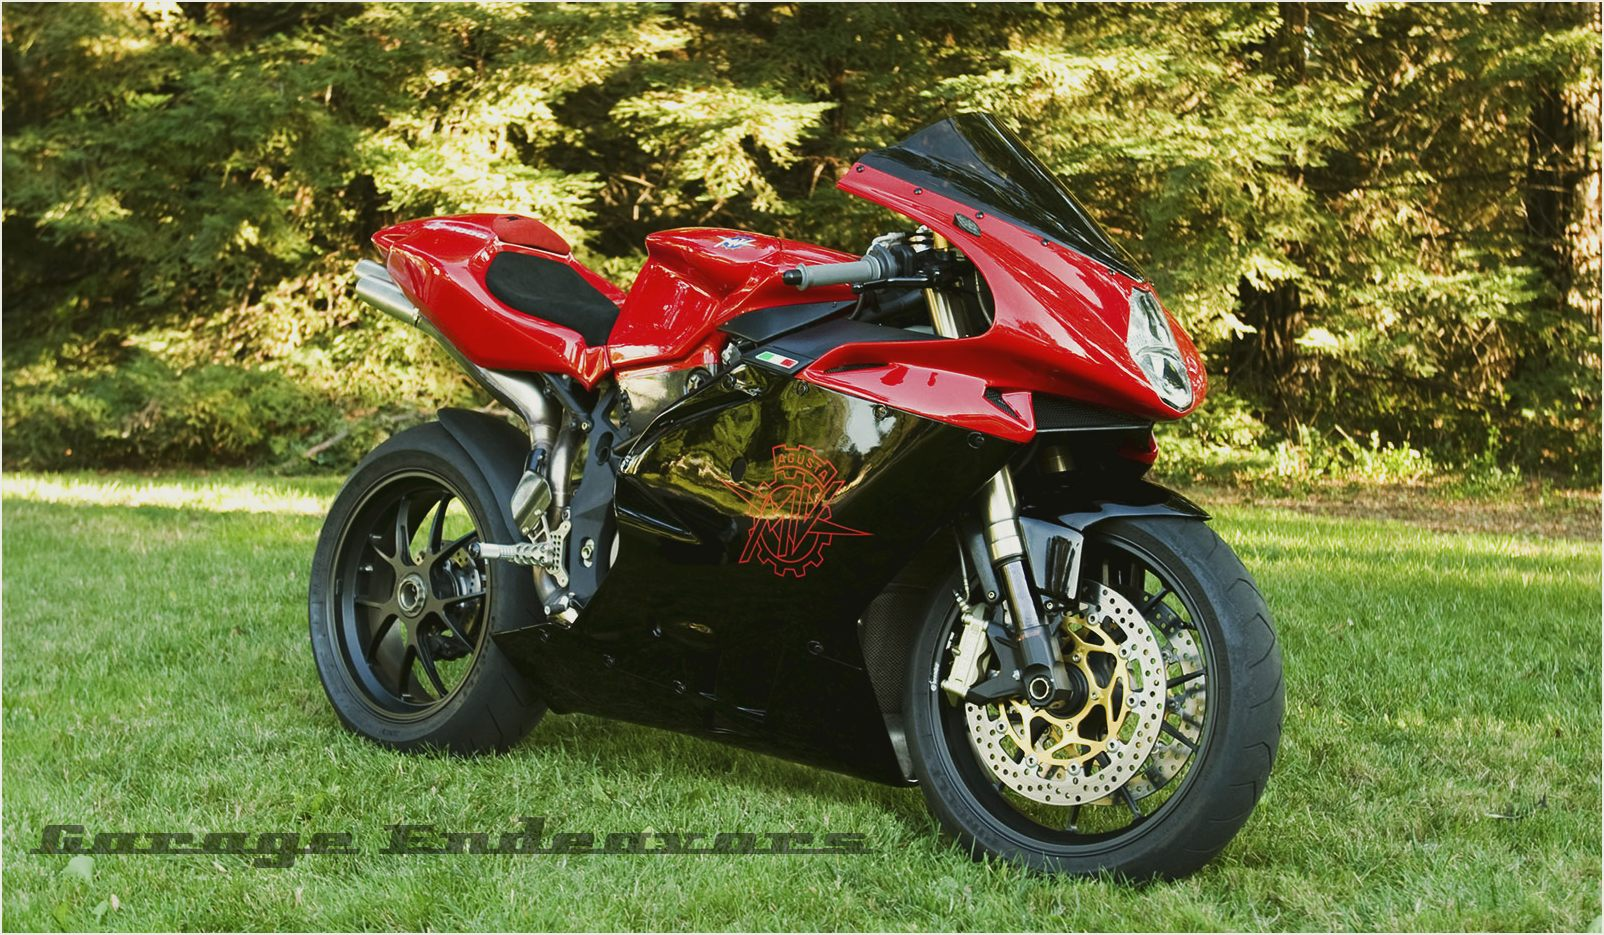 MV Agusta F4 1000 S 1+1 2006 images #114194